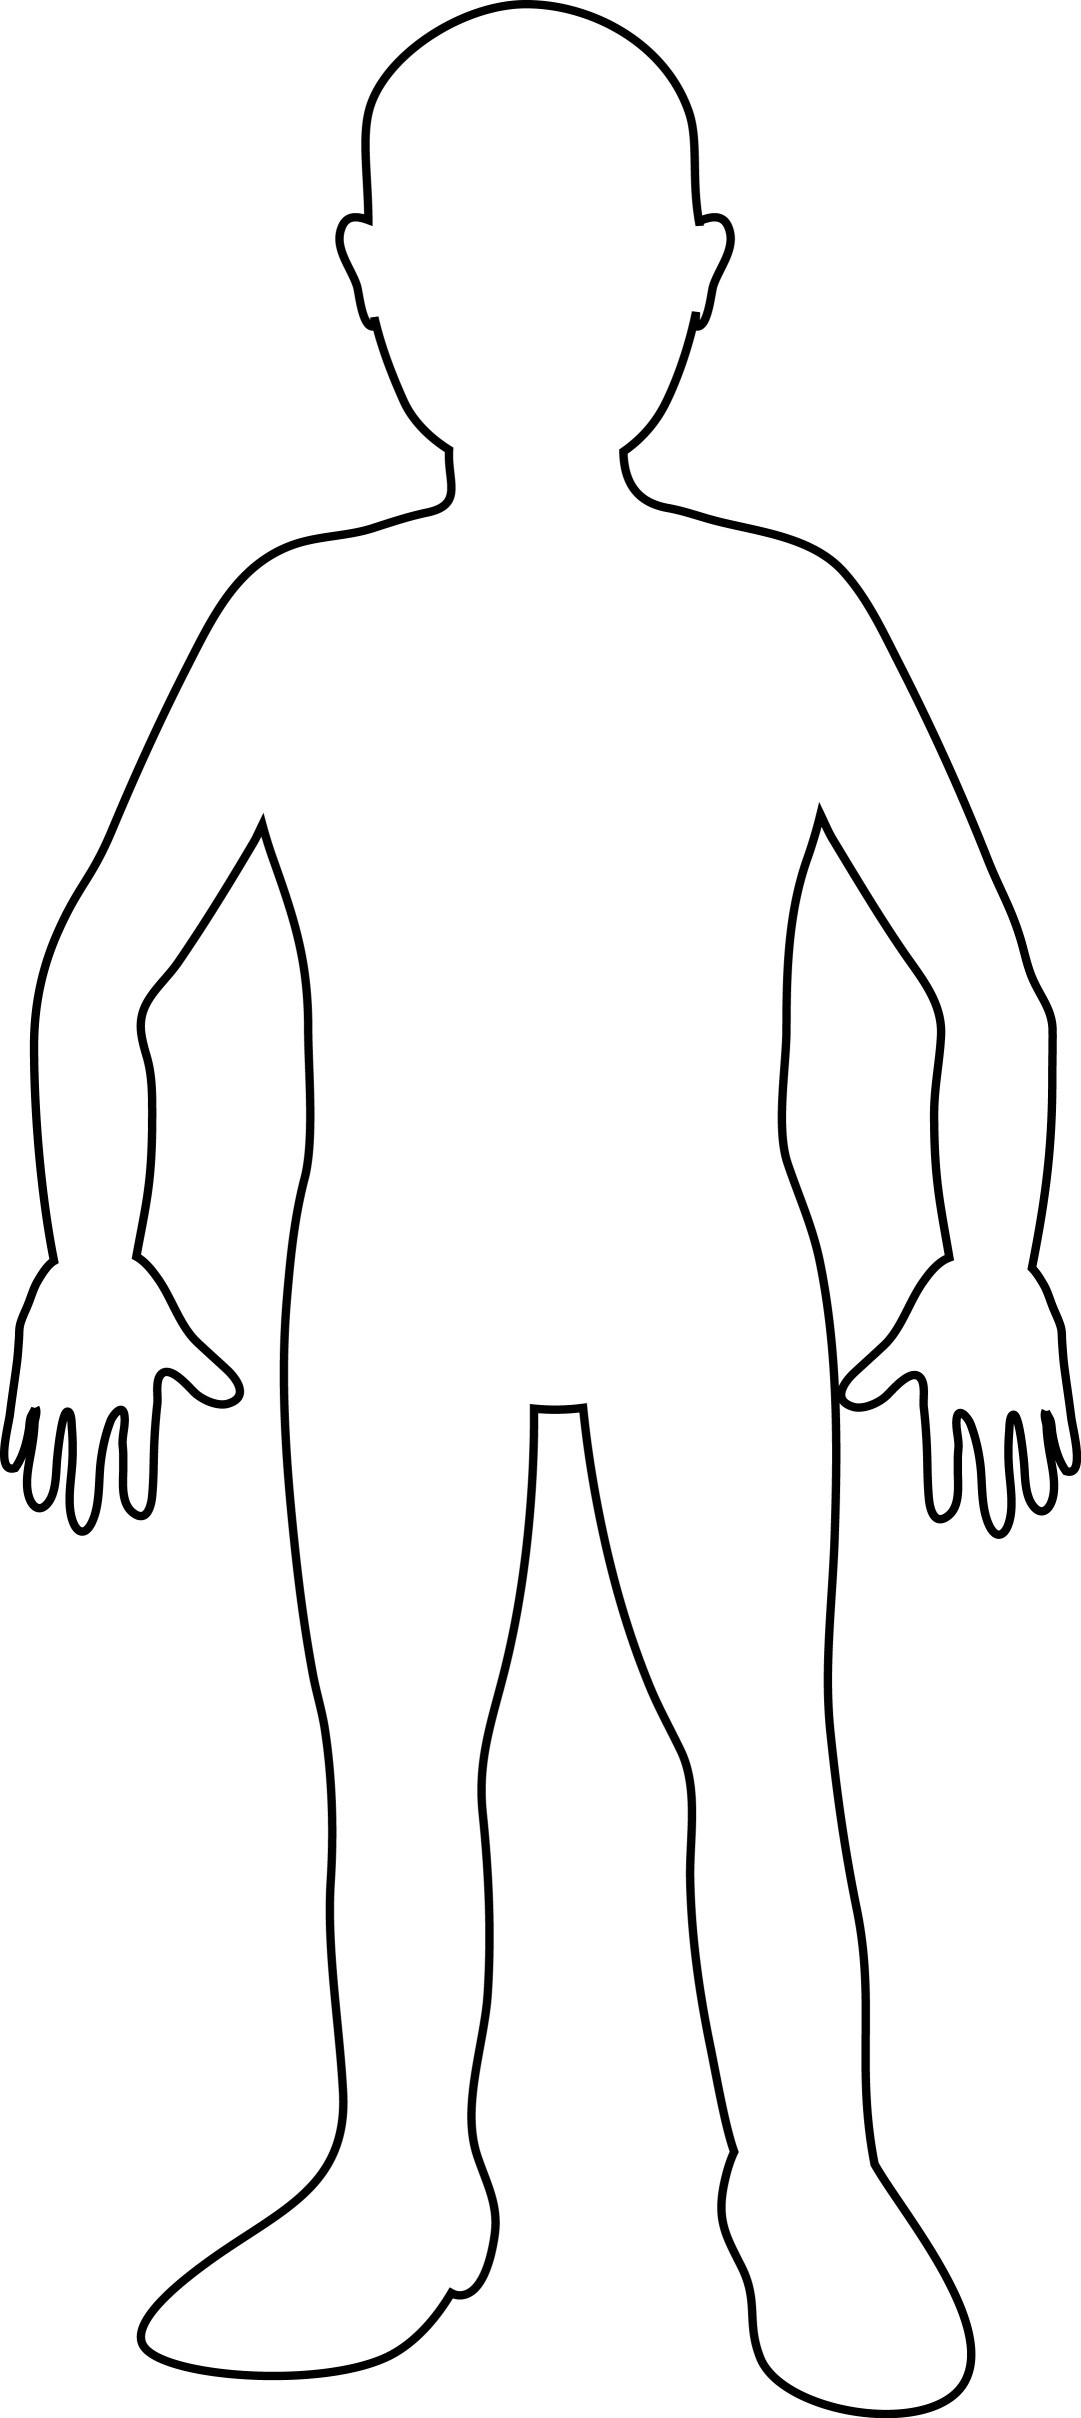 Free Blank Person Template, Download Free Clip Art, Free Clip Art On - Free Printable Human Body Template